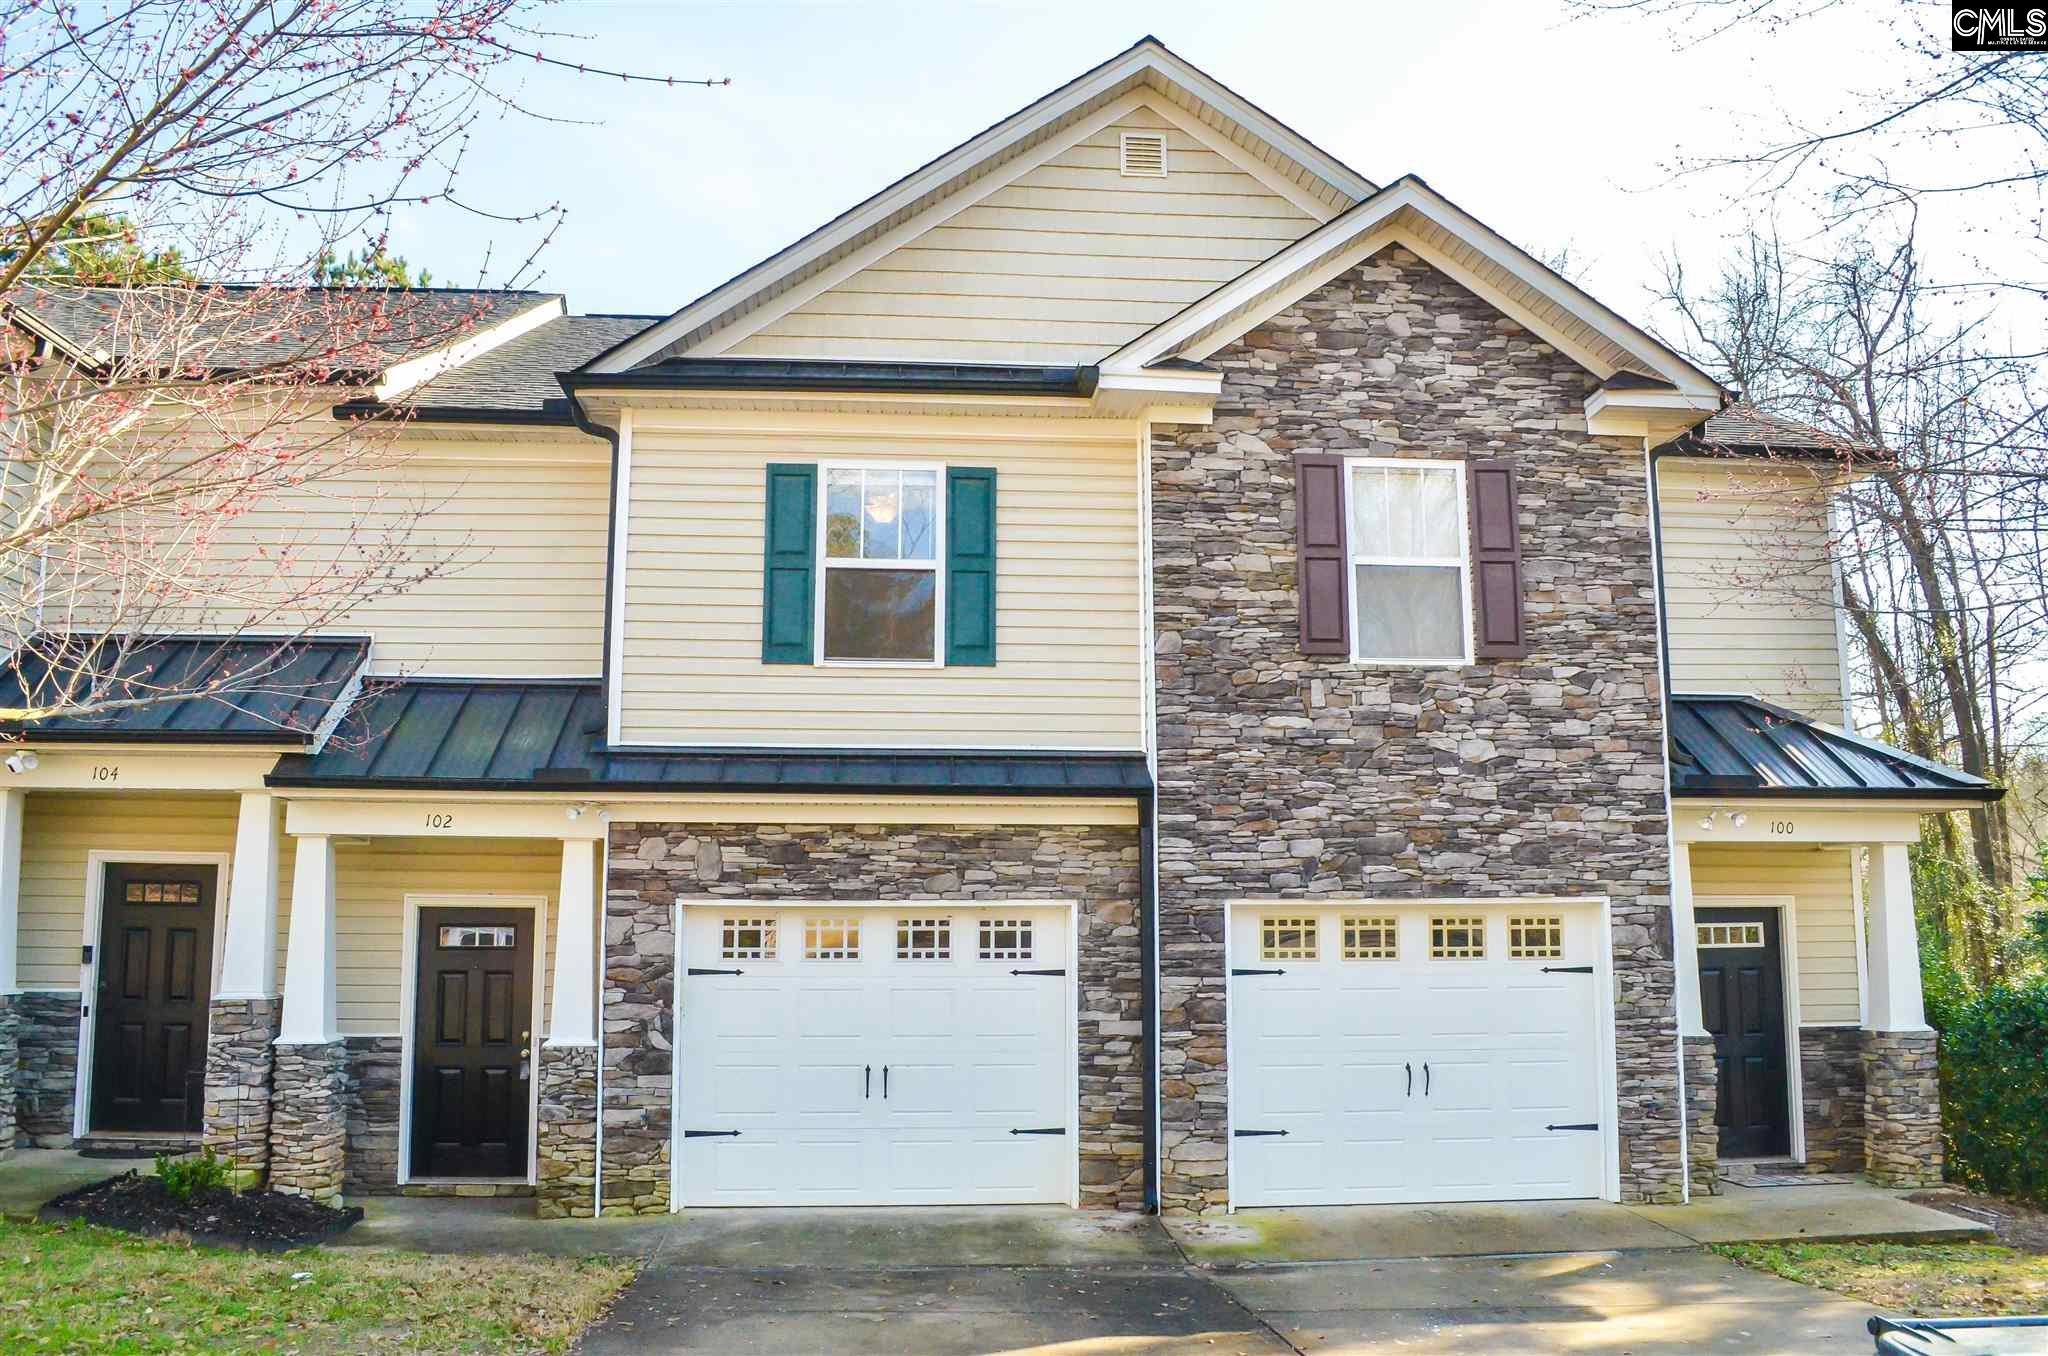 102 Tybo Lexington, SC 29072